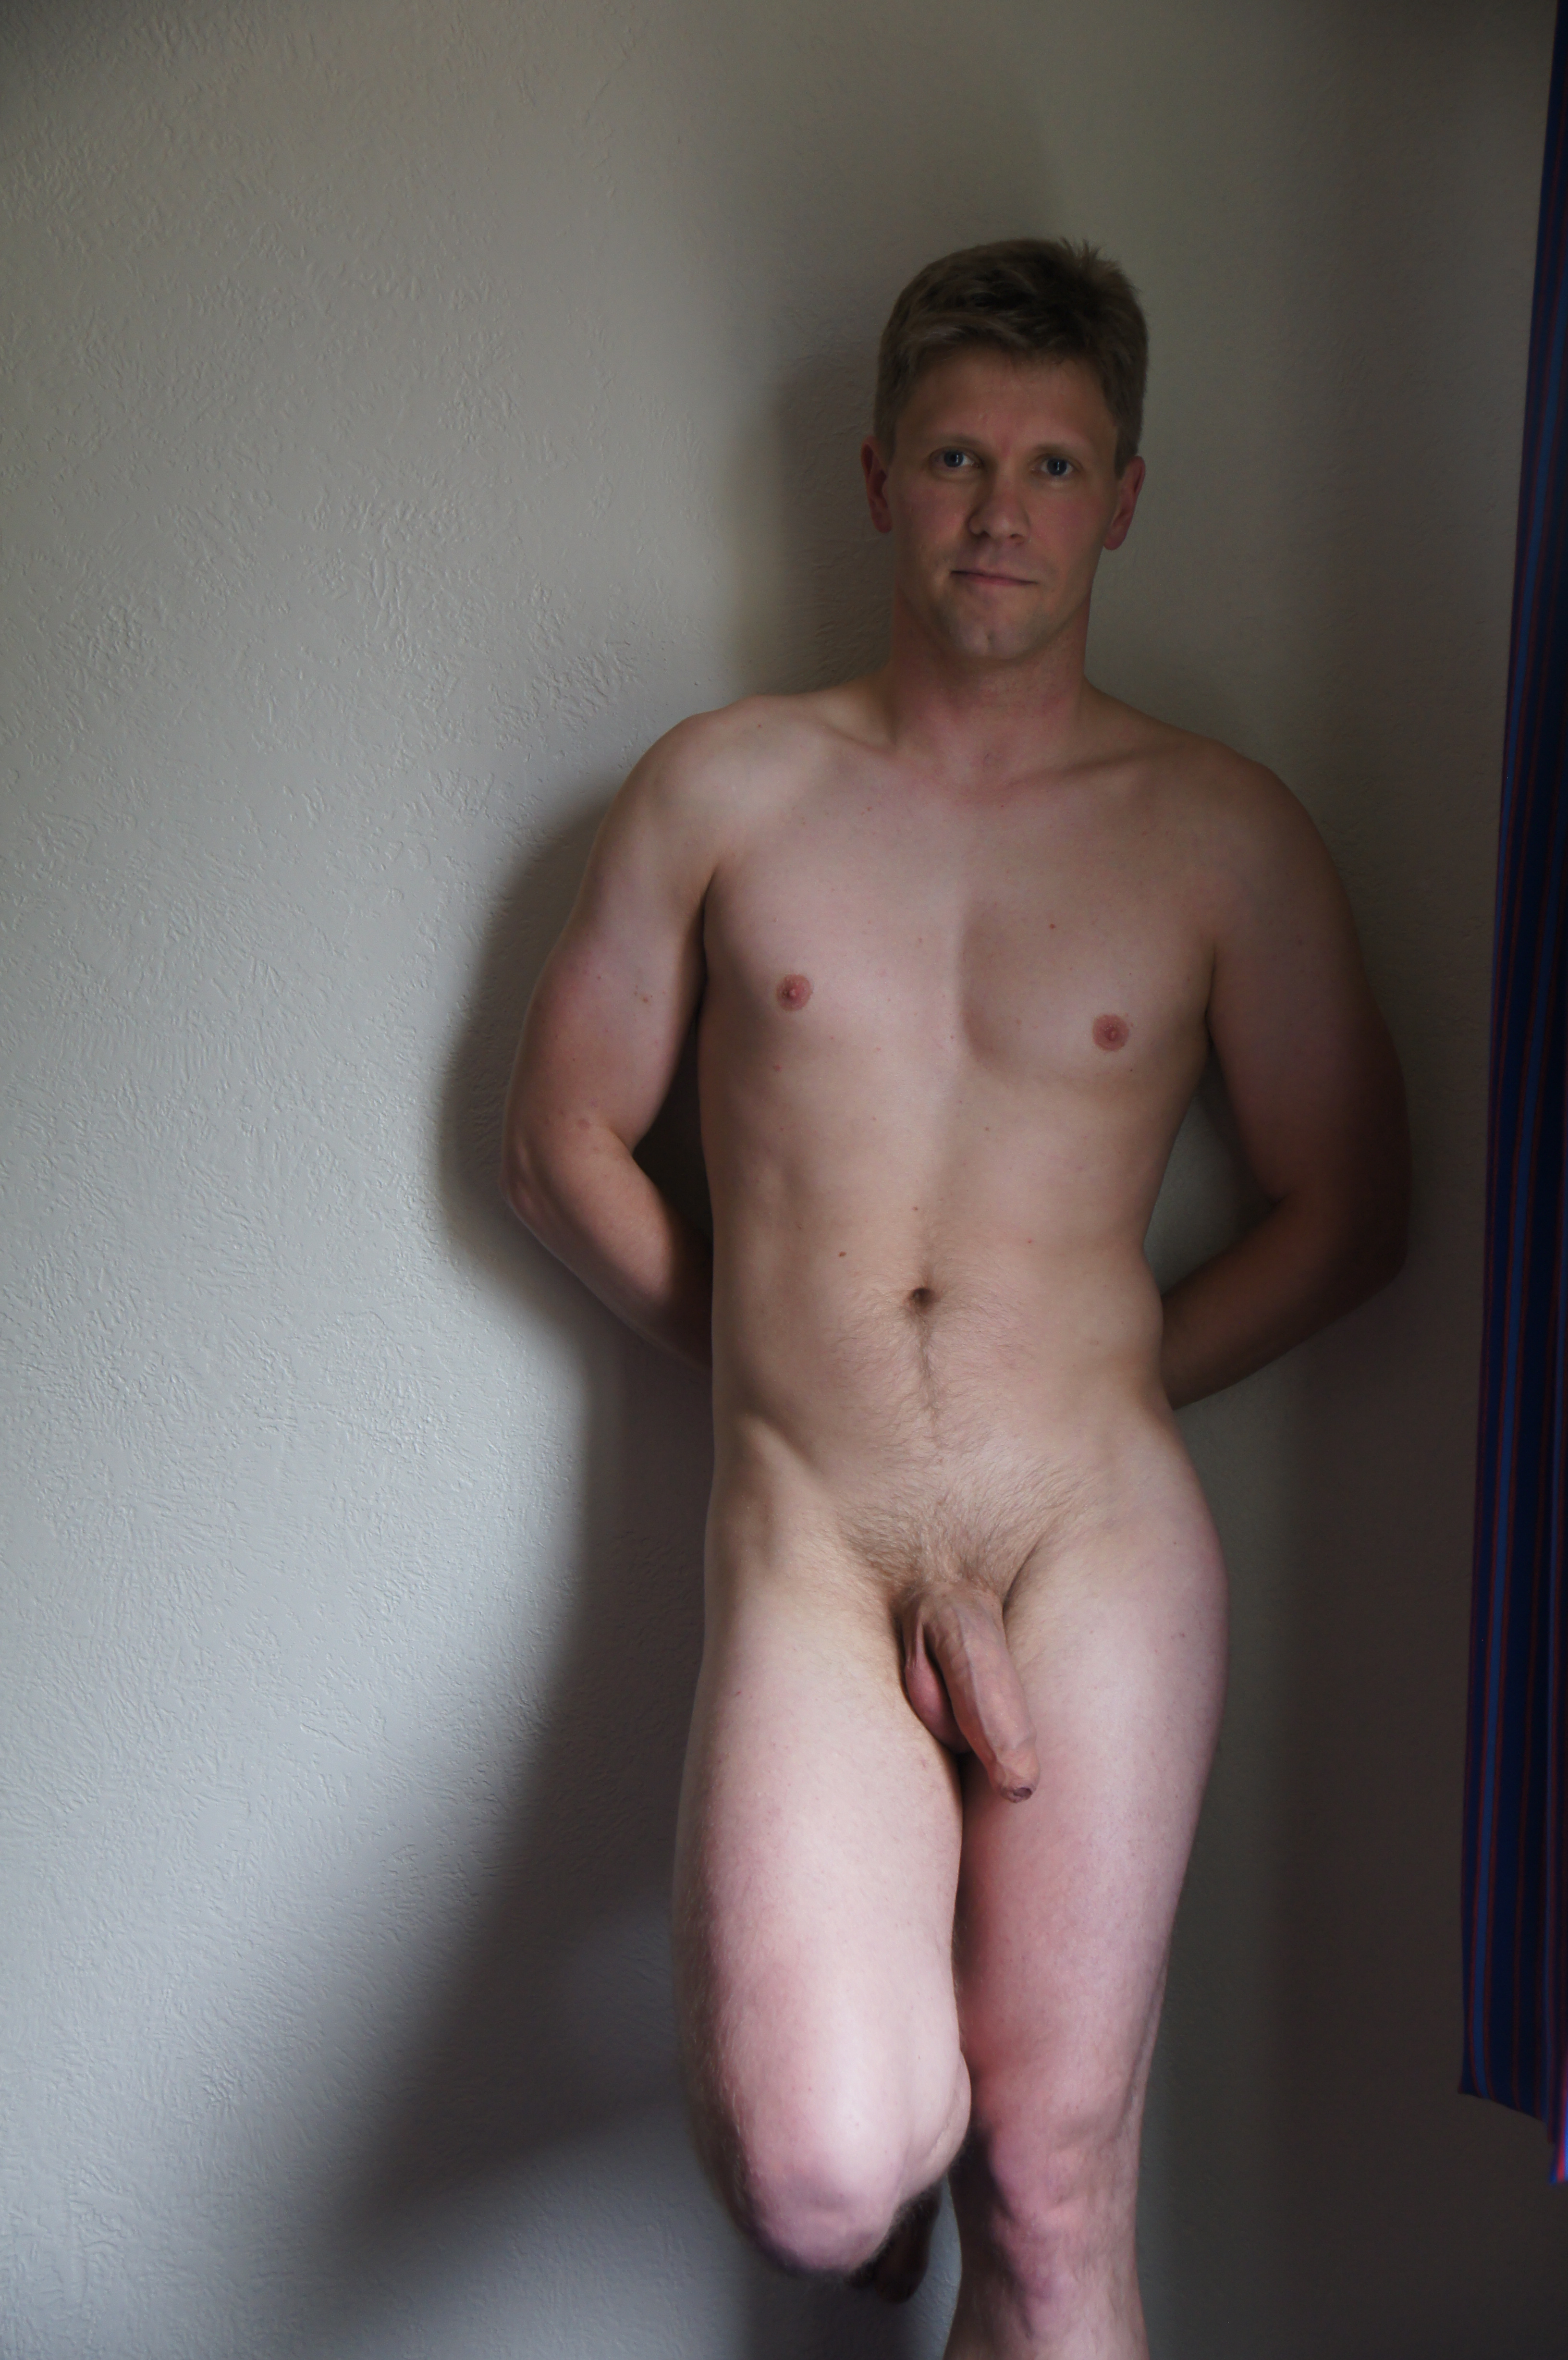 Naked man with uncut penis